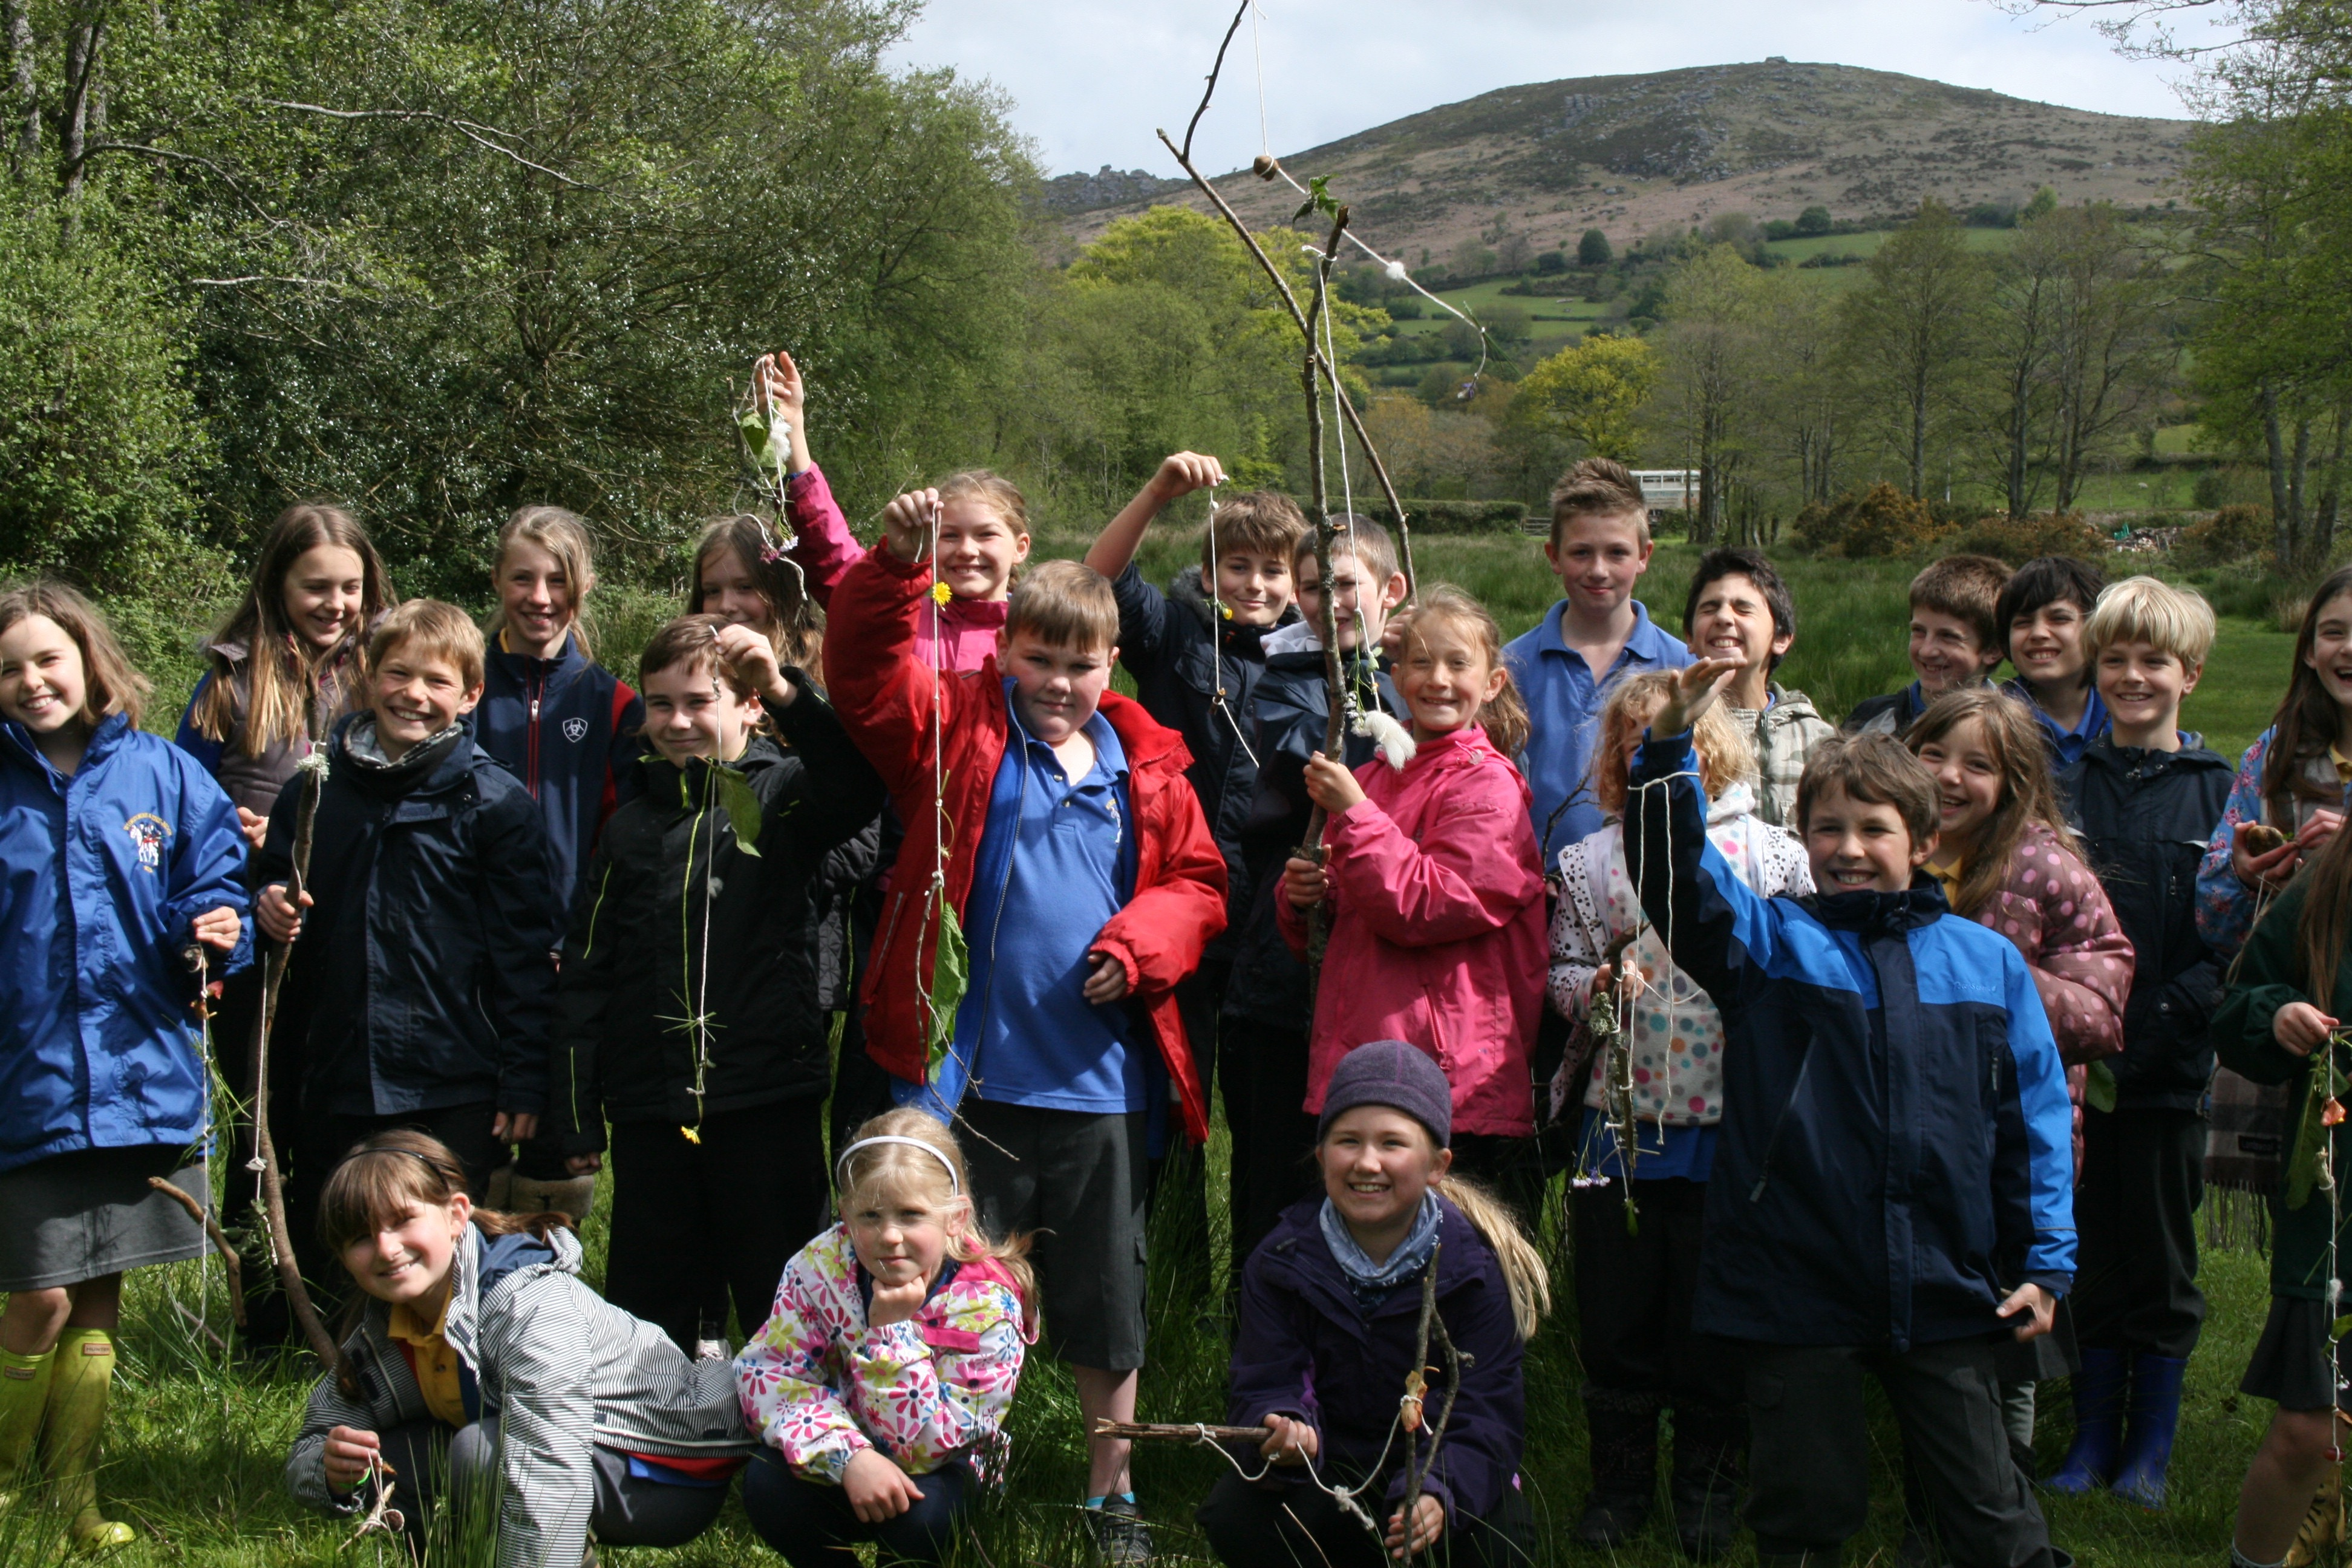 Children hold up their creations of items they have found on a walk